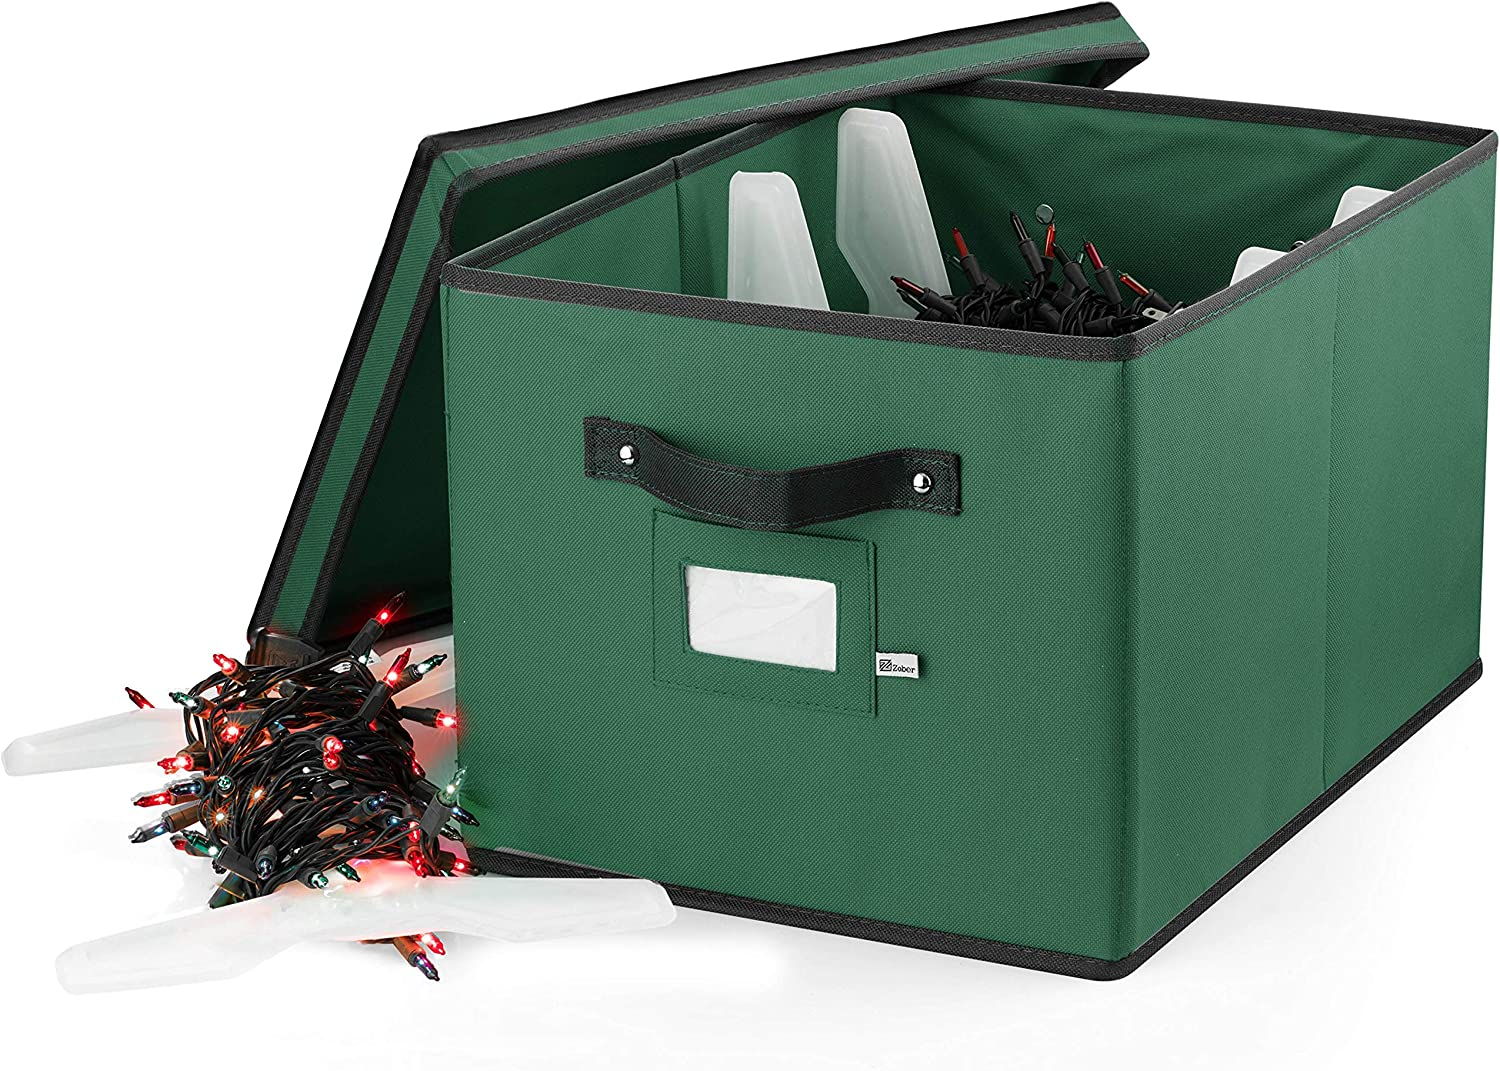 ZOBER Christmas Light Storage Box Max 51% OFF - High order 4 Premium with Oxford 600D